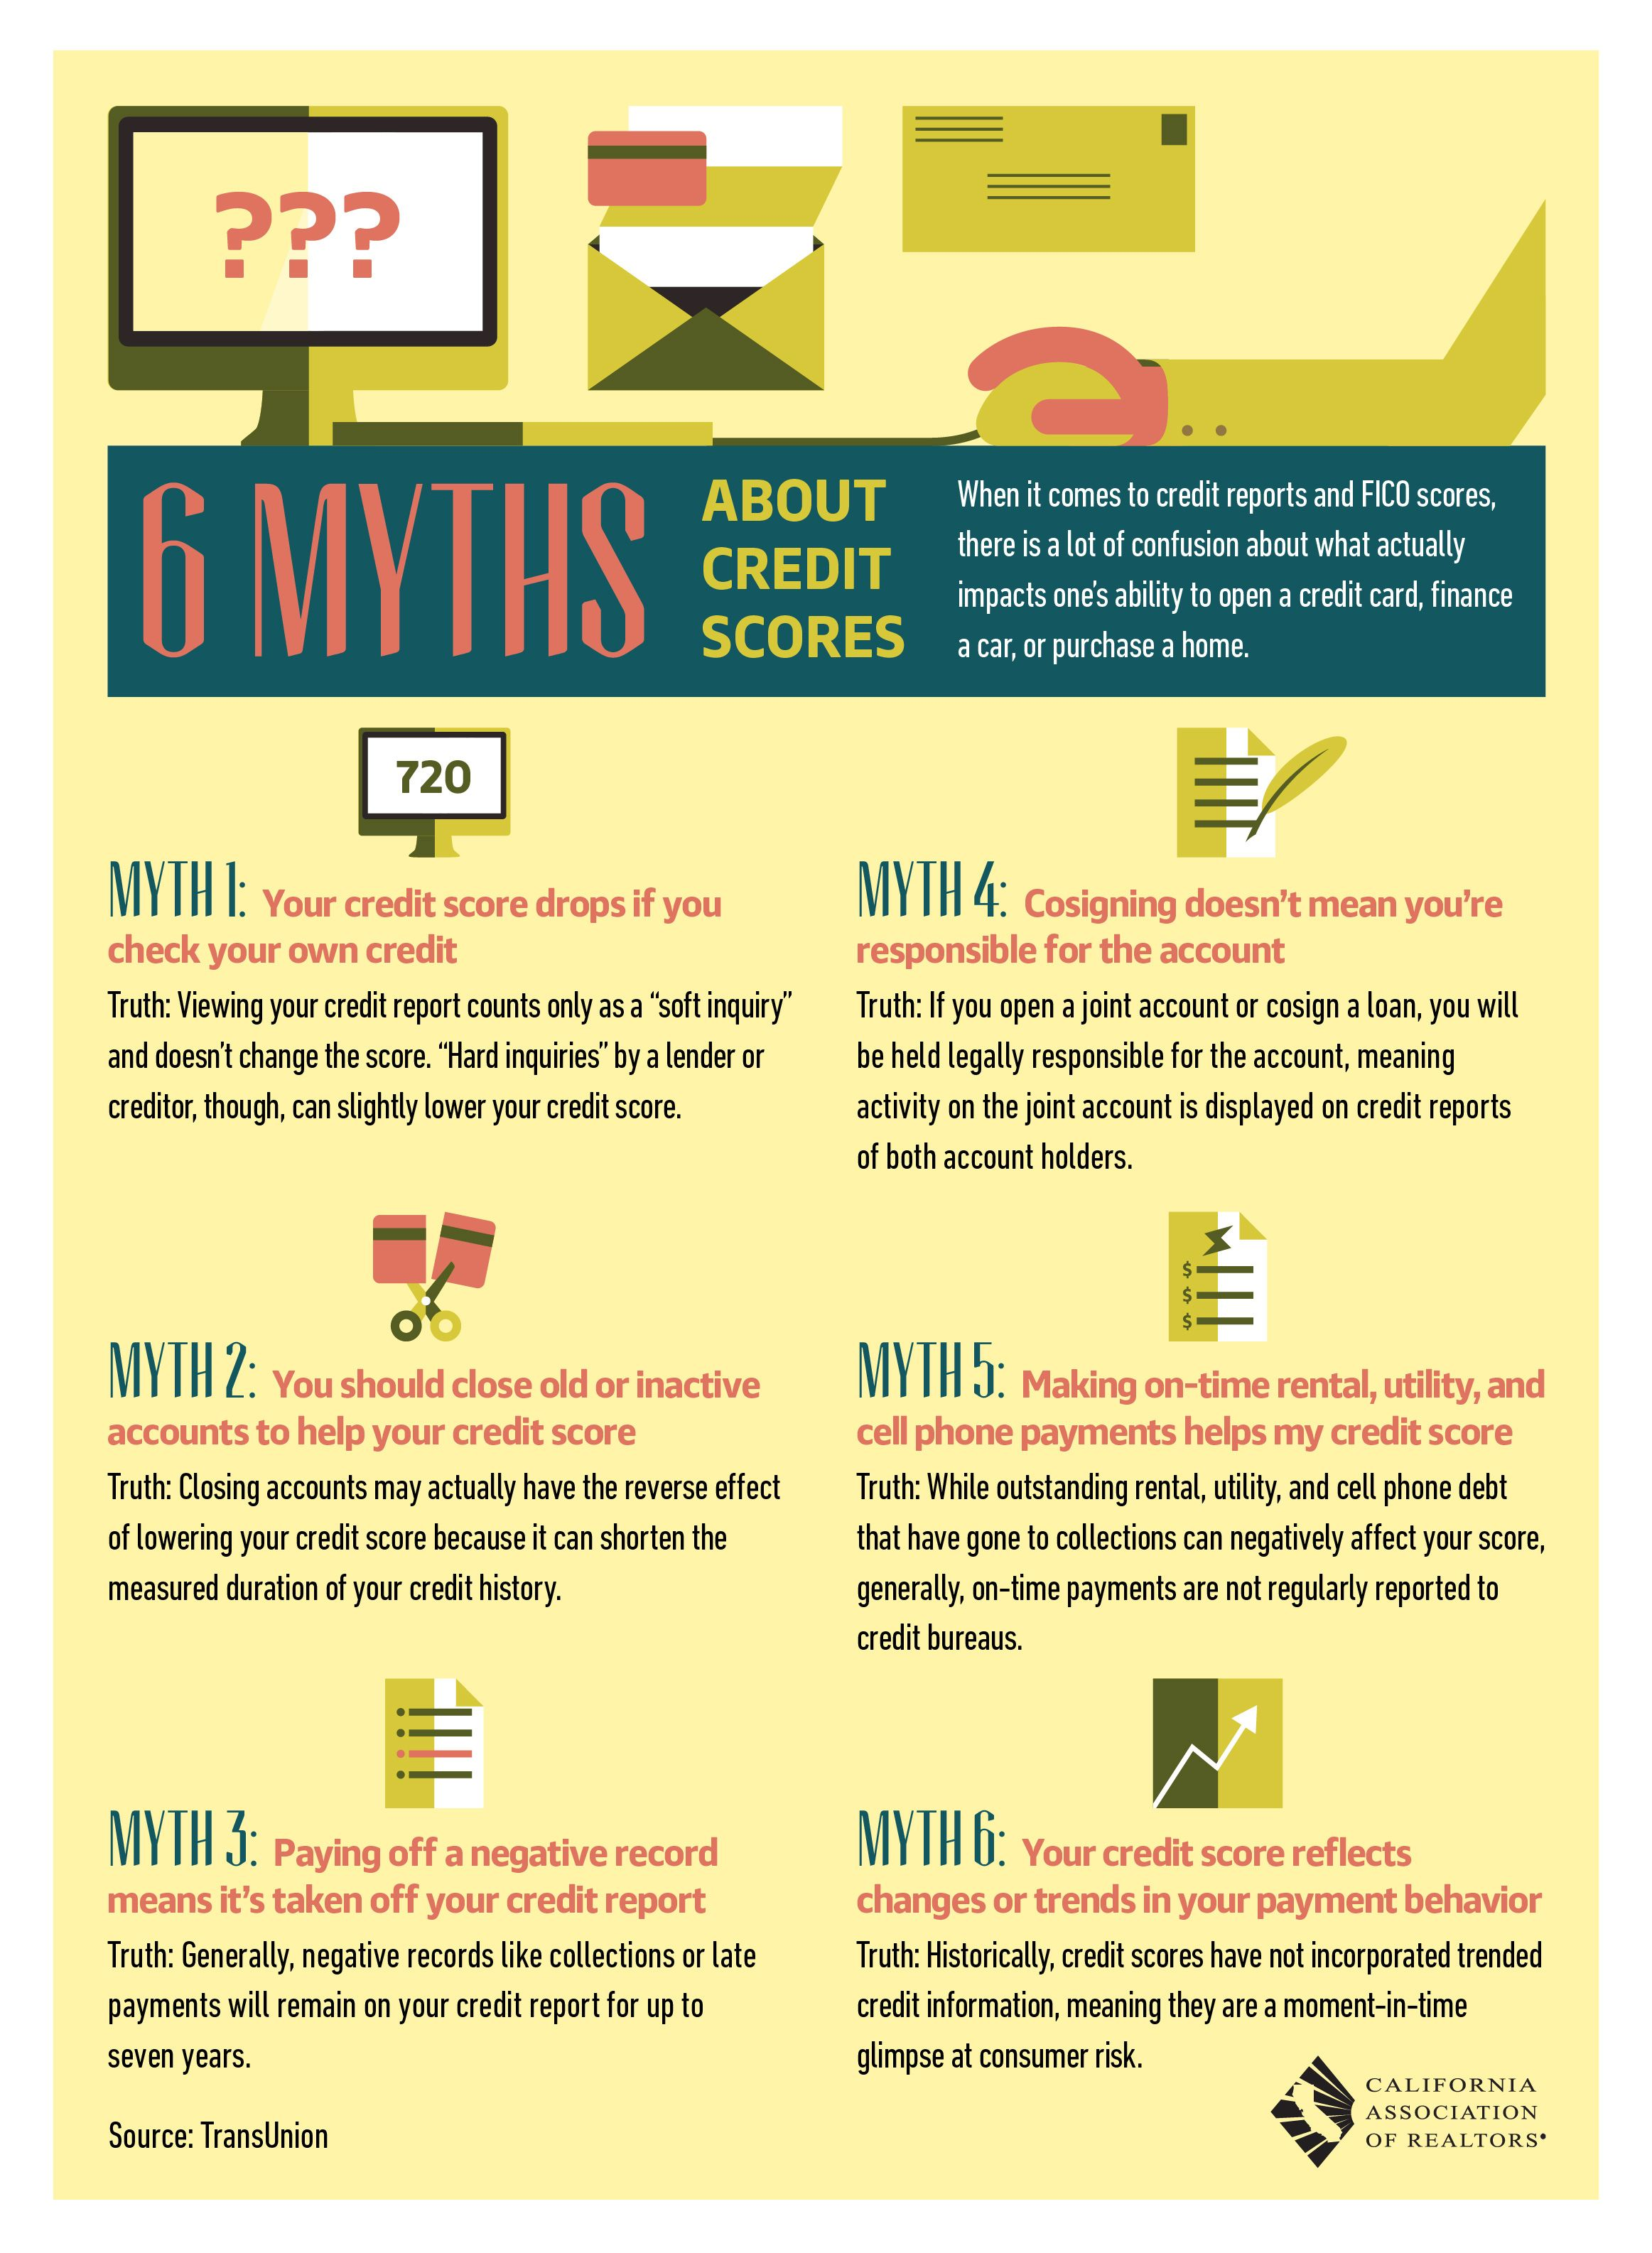 Real Estate Tips 6 Myths About Credit Scores When It Comes To